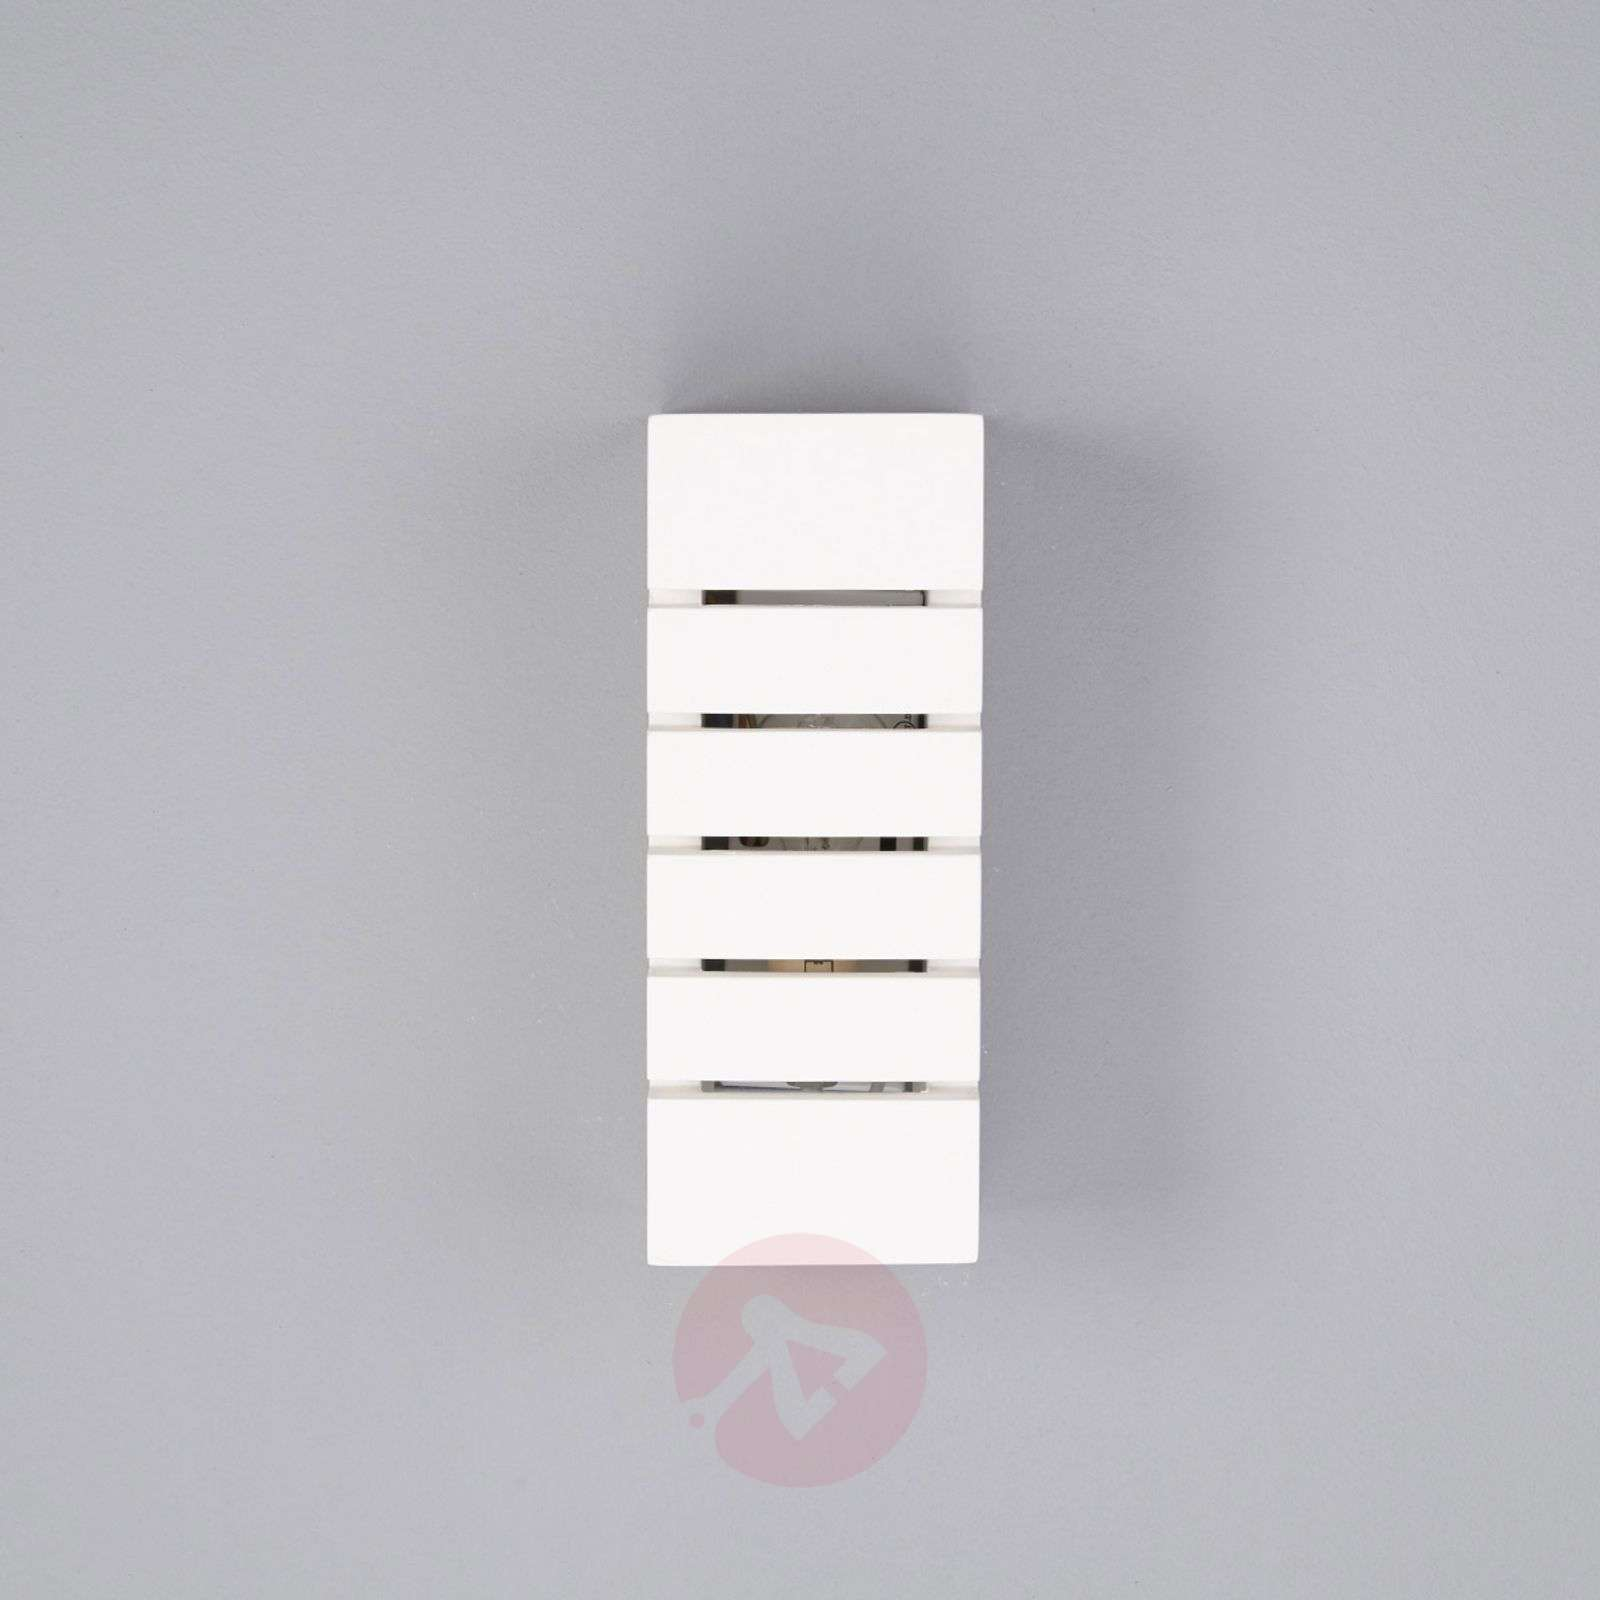 Flavian Indirect Wall Light with Slots-9613010-01